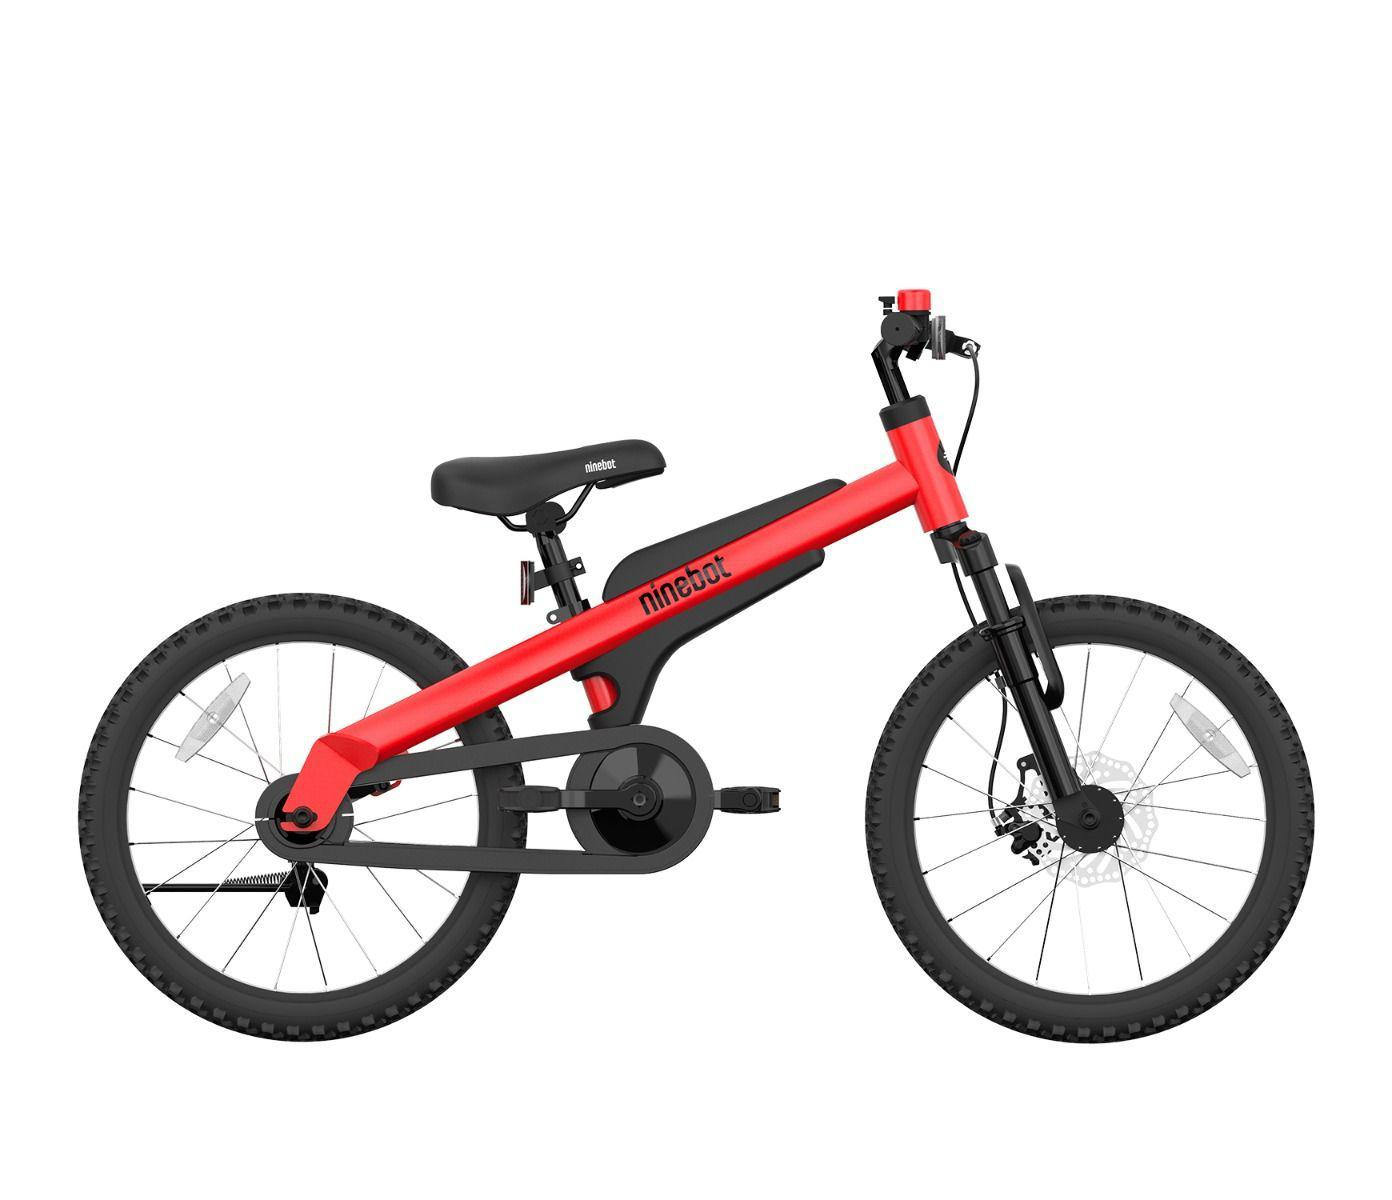 [US Direct] Ninebot Kids Bike by Segway 18 Inch with Kickstand, Premium Grade, Recommended Height 3'9'' - 4'9'' (Blue) 124.*81.0*54.0